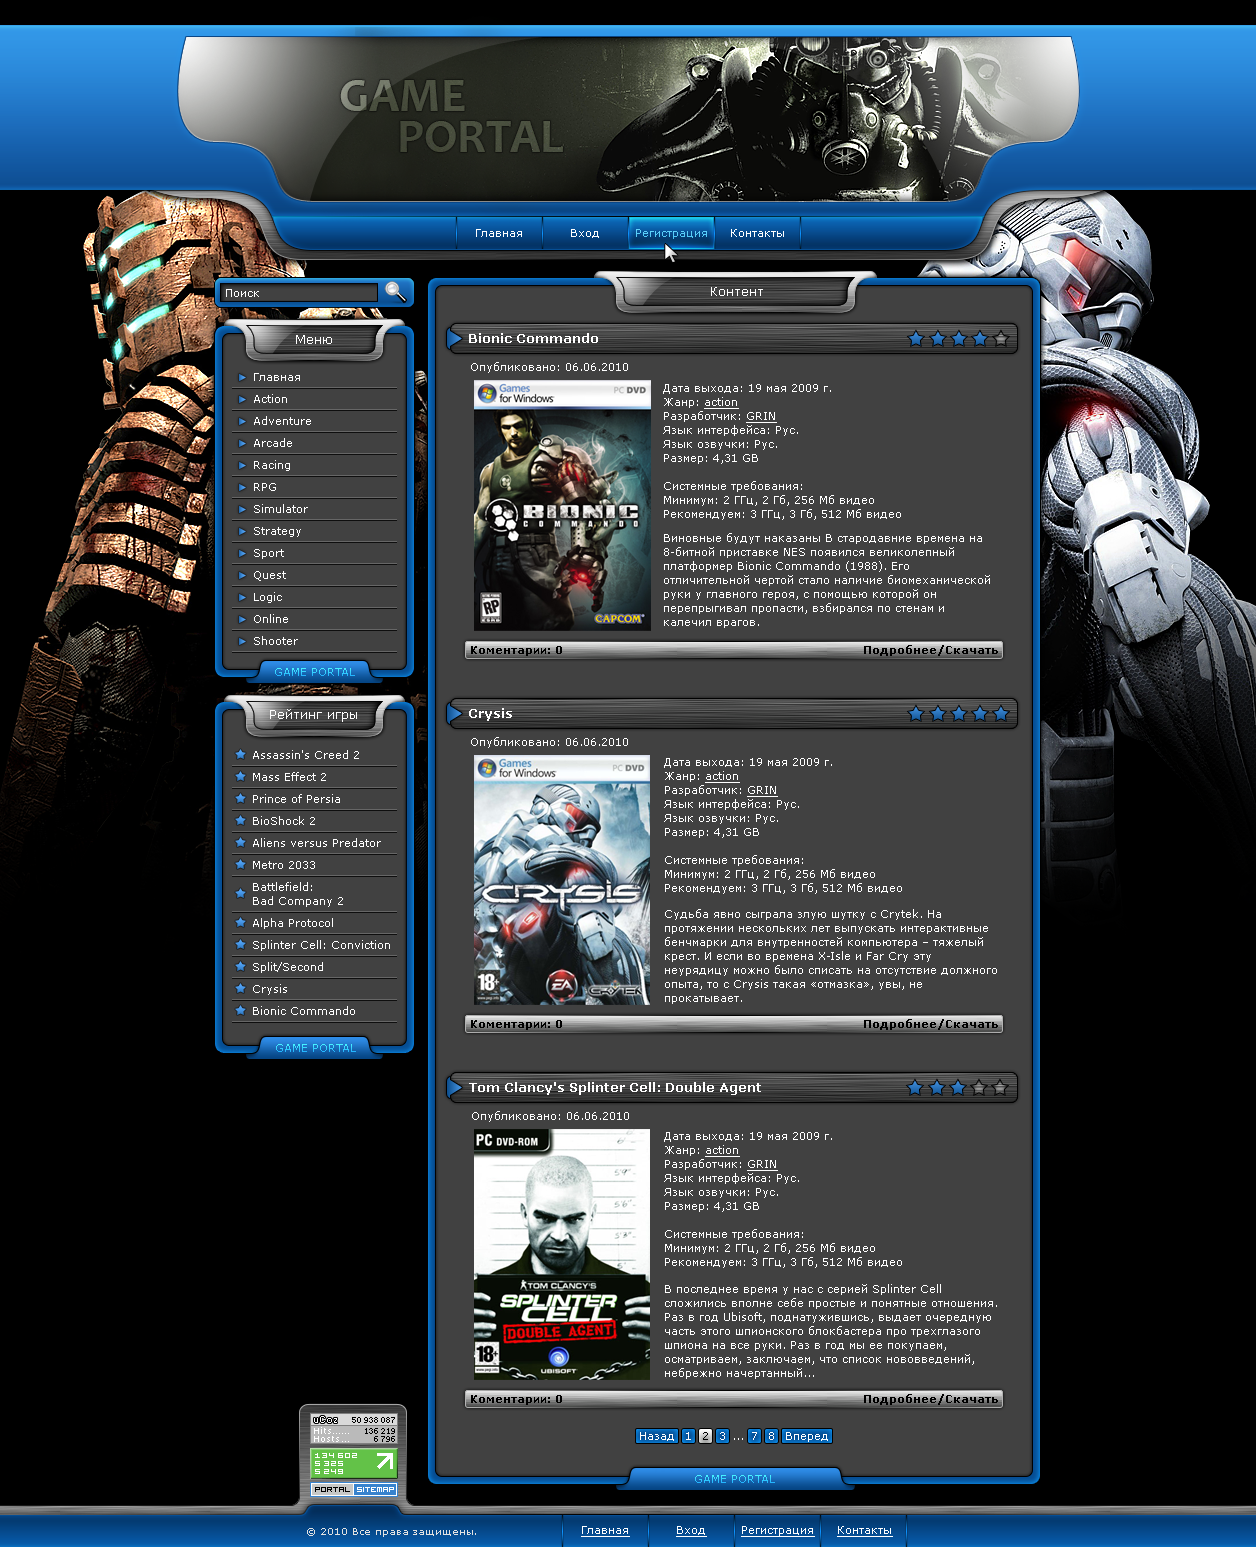 Game portal web design by invision art on deviantart for Arts and craft websites